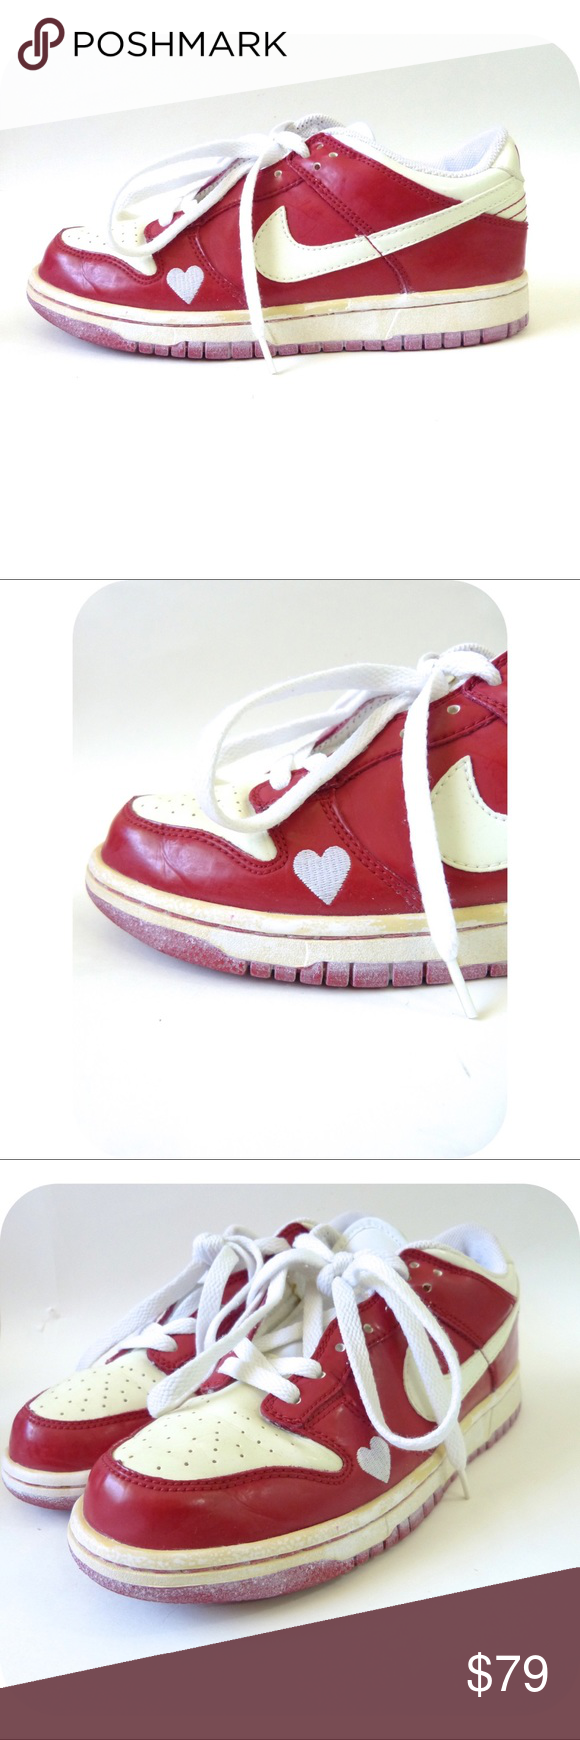 Nike Dunk Low Red Valentines Day Shoes 6 5 In 2018 My Posh